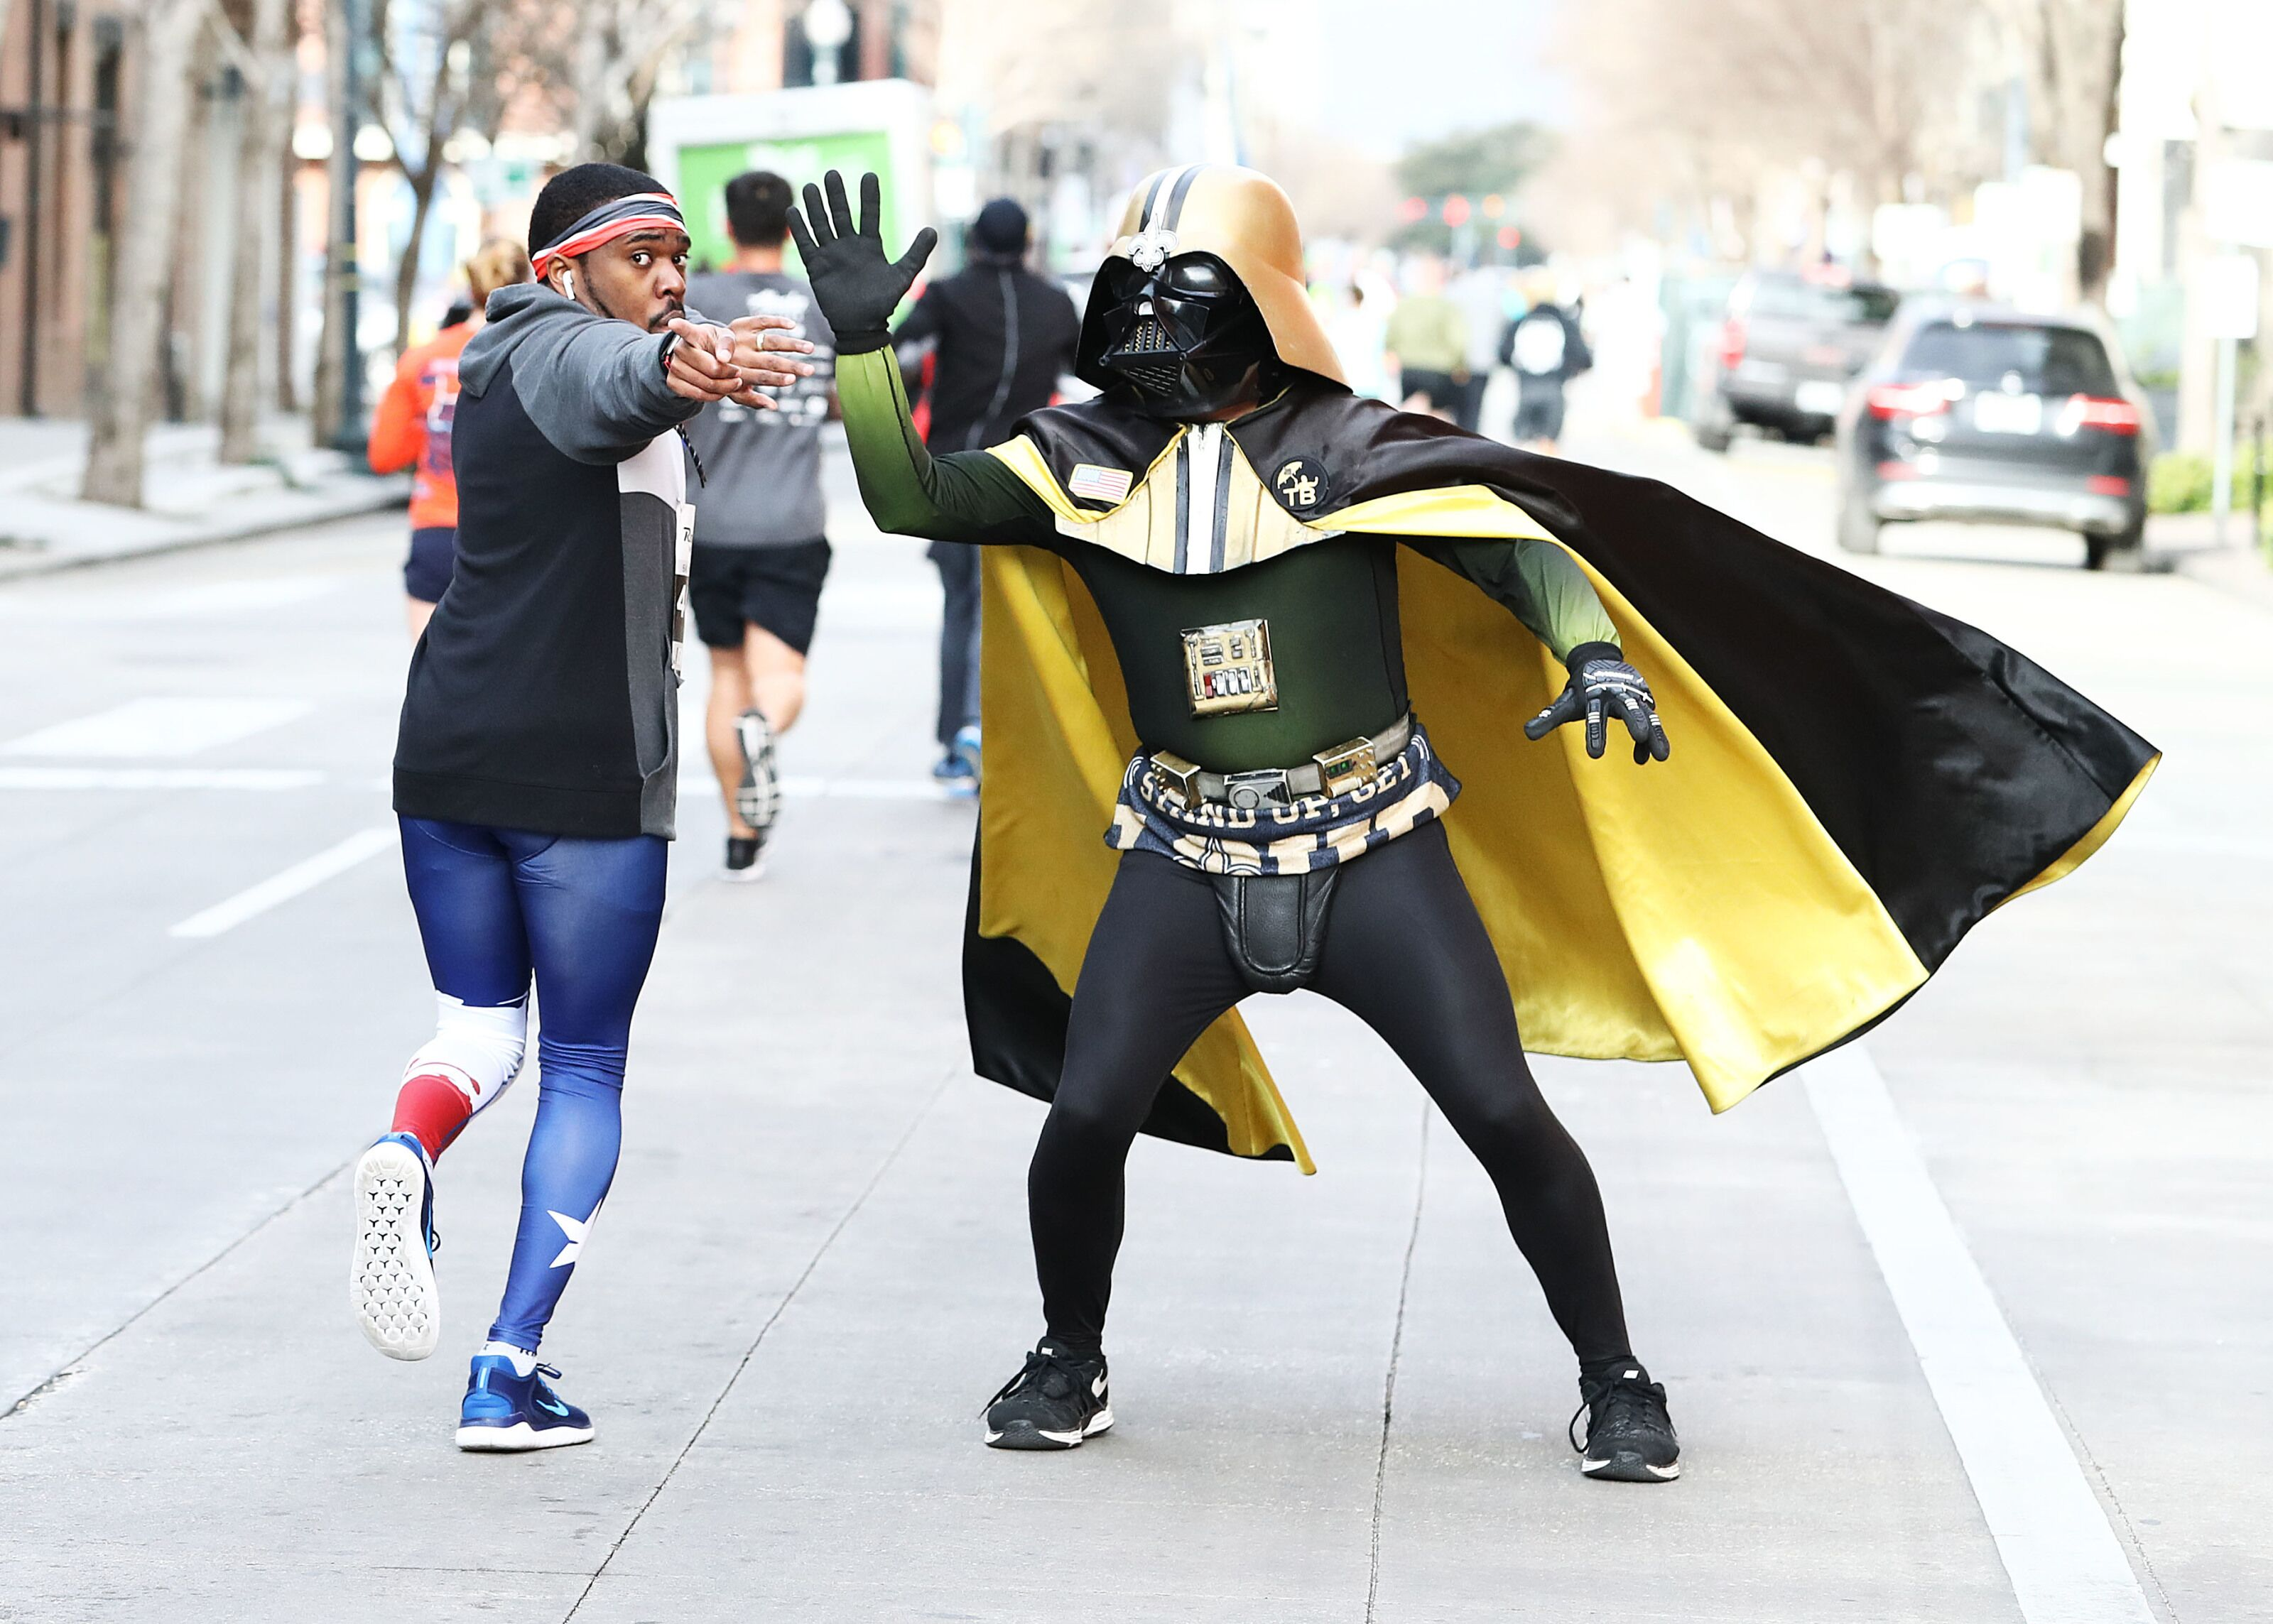 Why does Saints quarterback Drew Brees love Darth Vader so much?